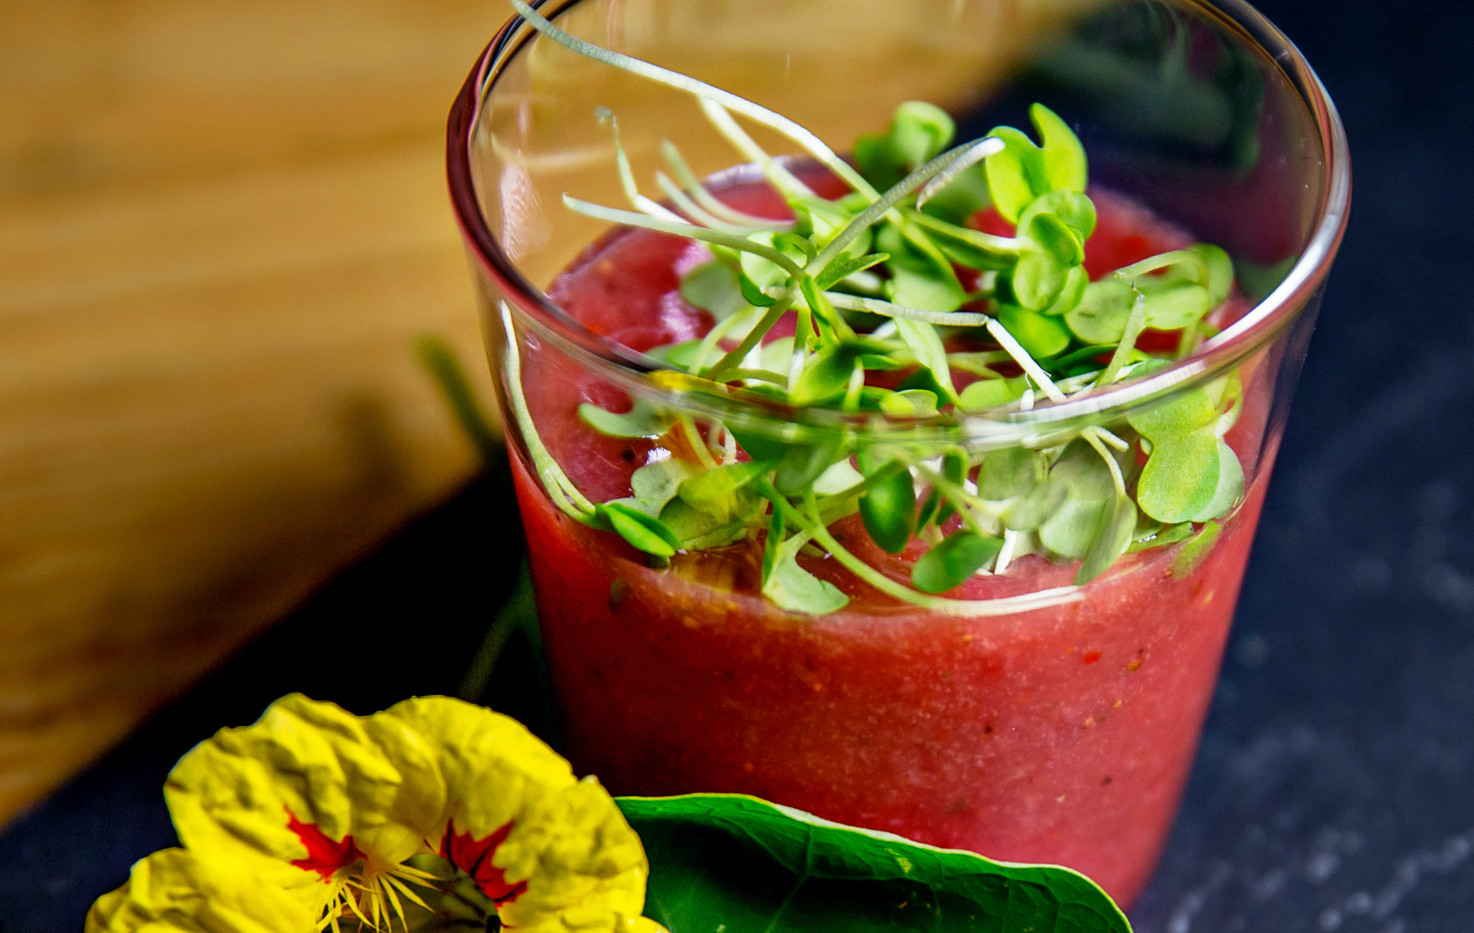 Strawberry_Tomato_Gazpacho-2.jpg